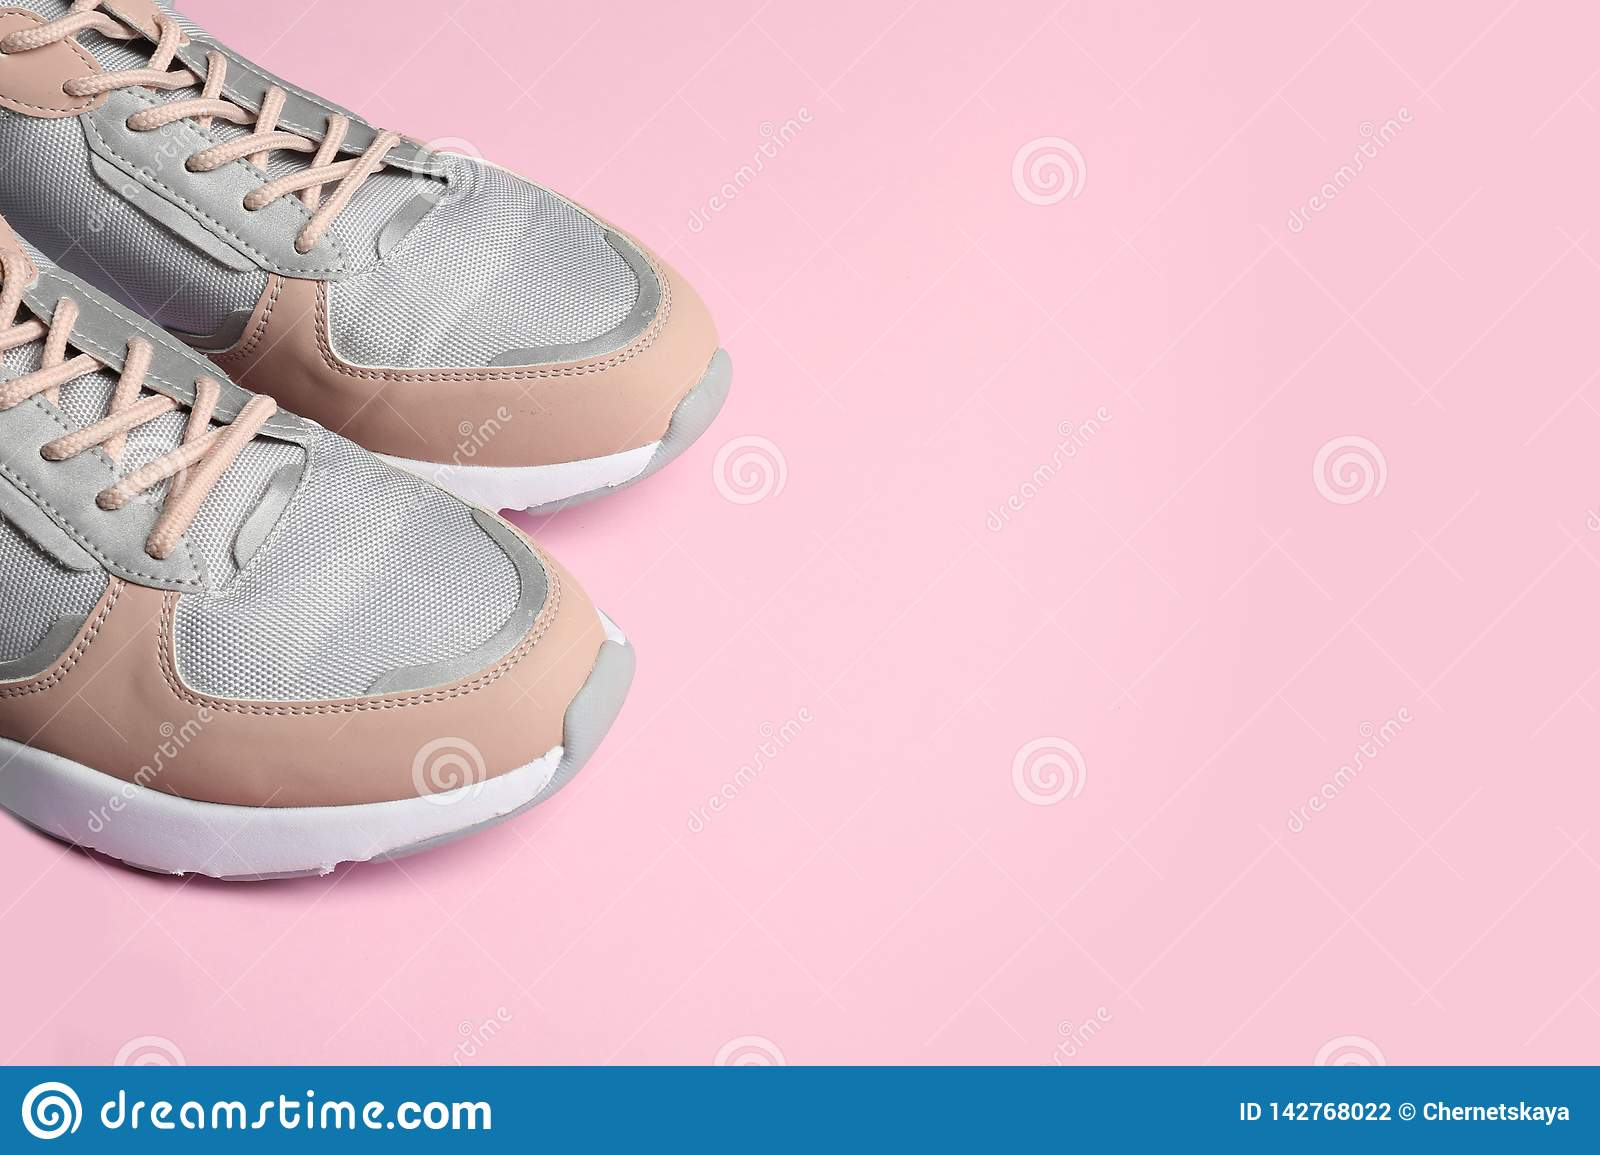 Pair of sports shoes on color background, closeup